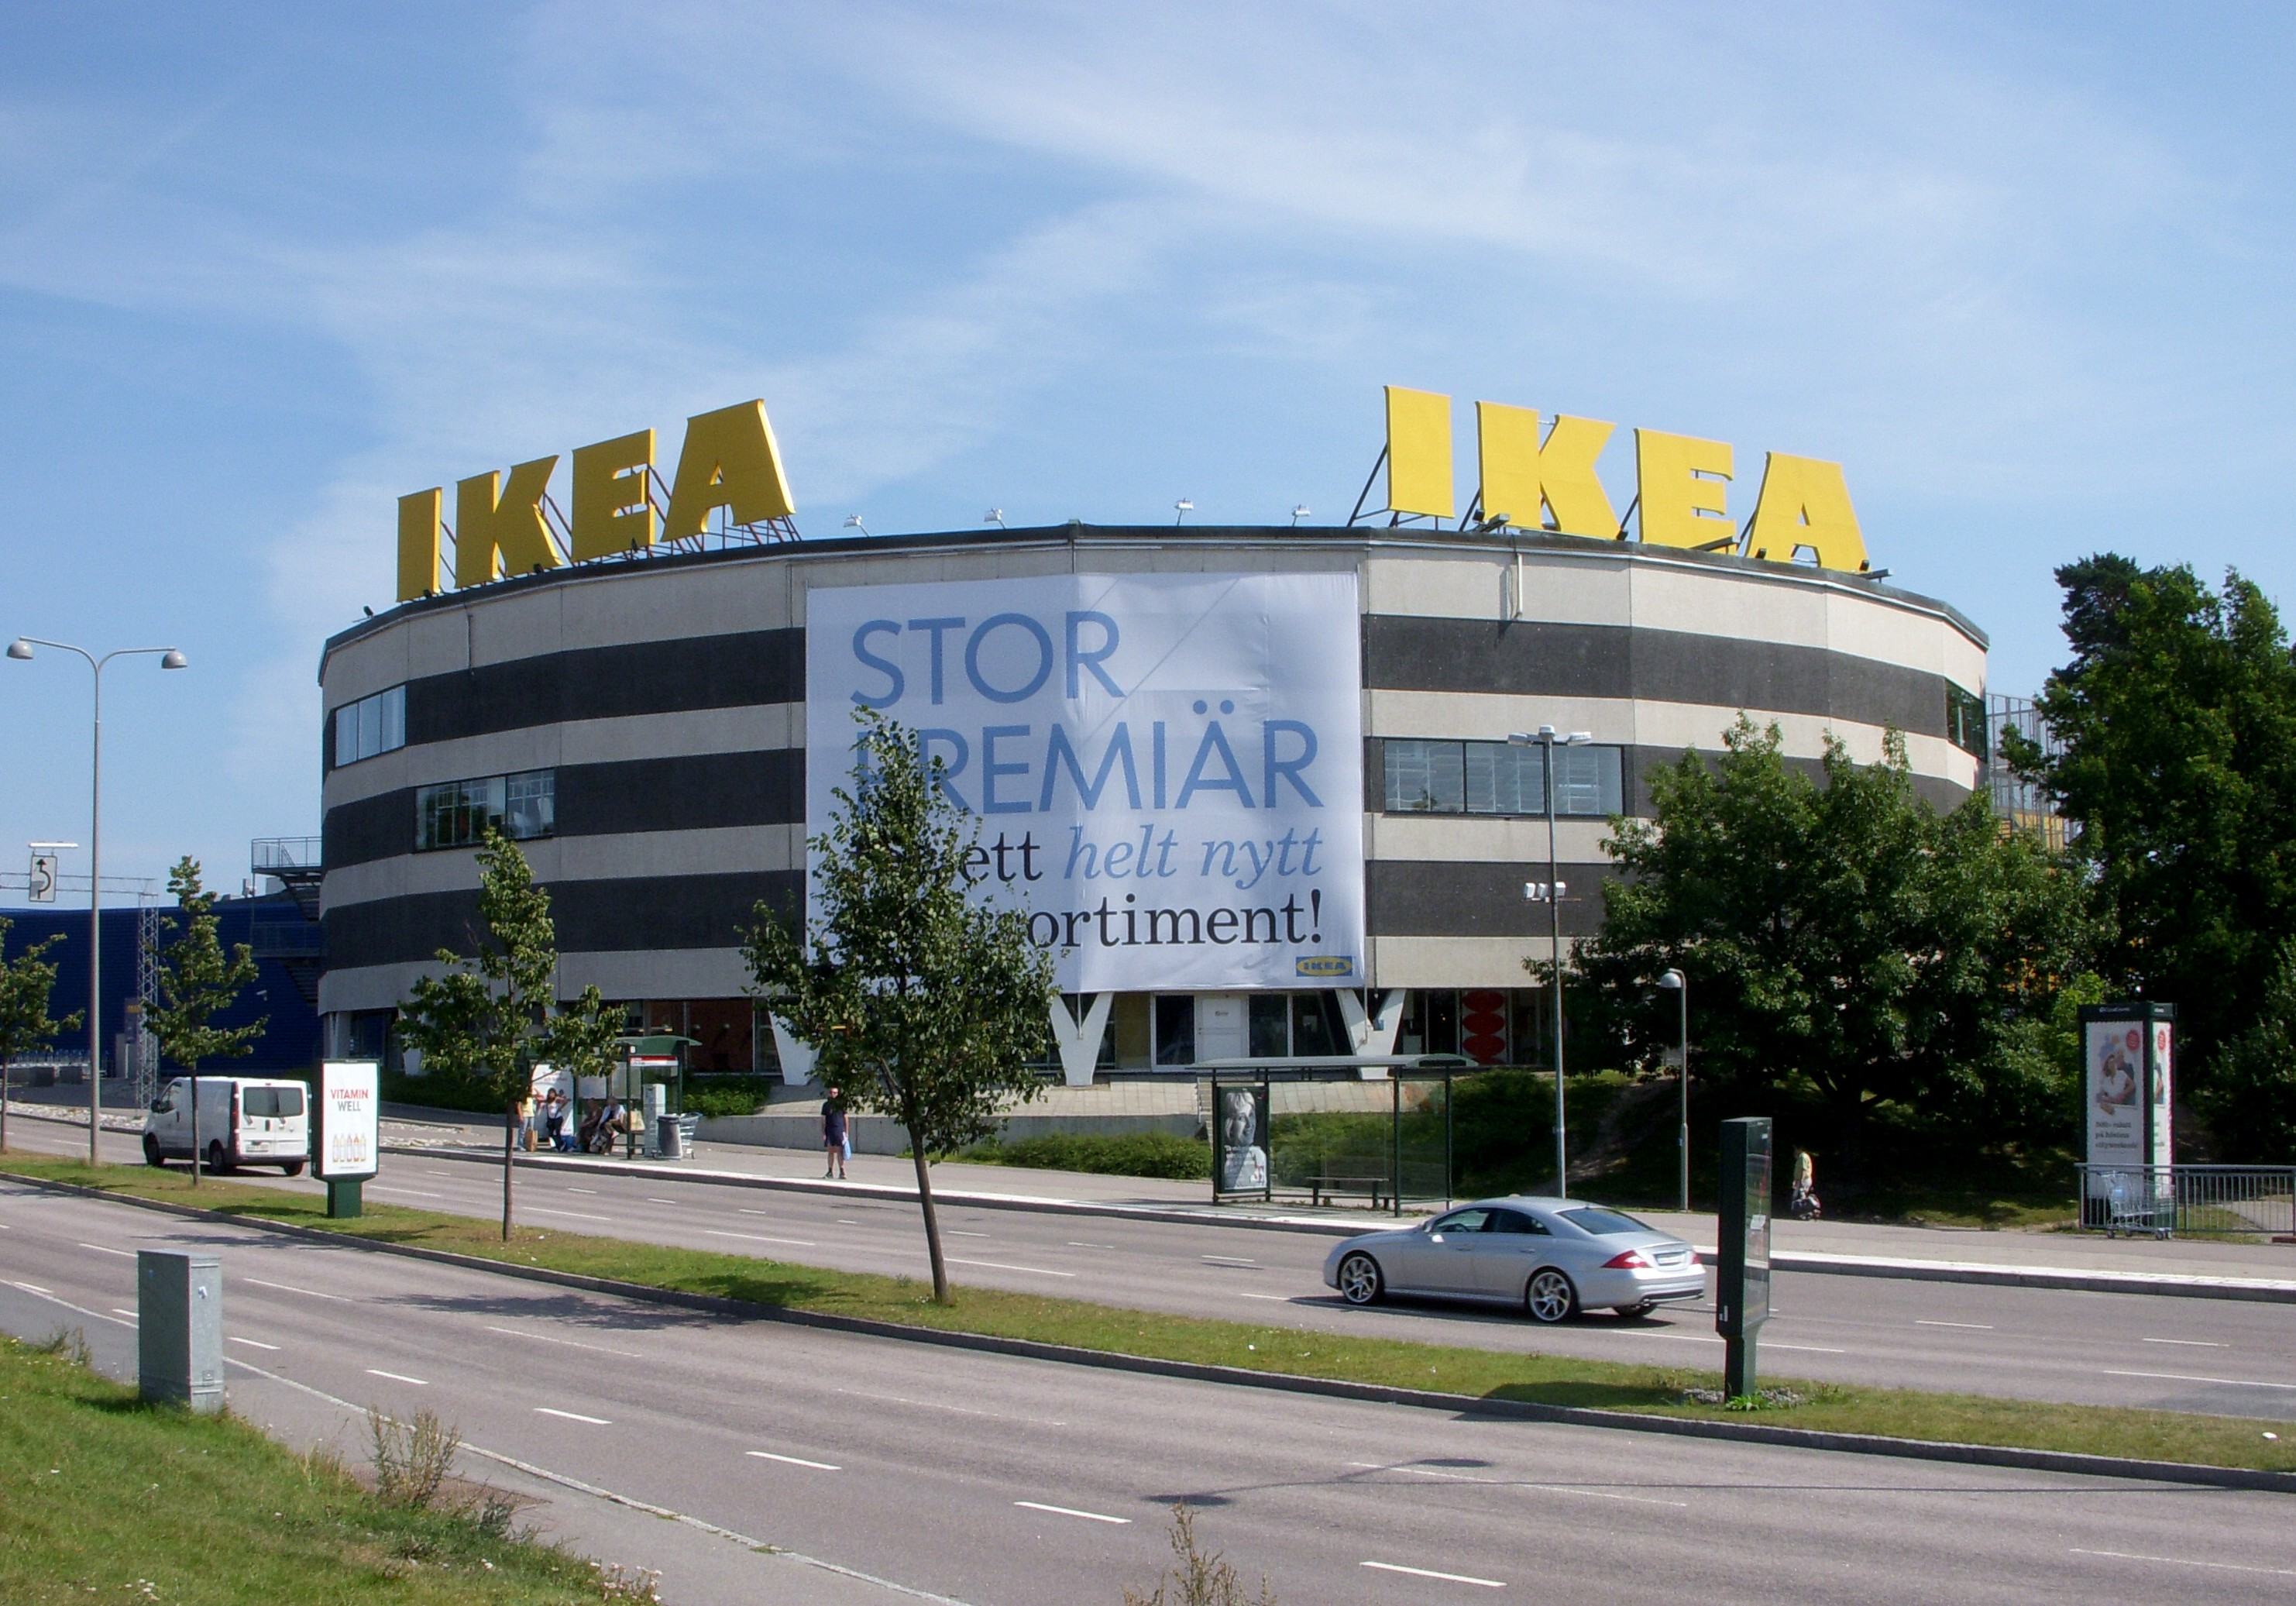 swedens ikea Ikea founder ingvar kamprad amassed 362 billion kronor ($46 billion) in wealth before he died according to his will, half of that money will go to charity in sweden, with the rest divided among his children.